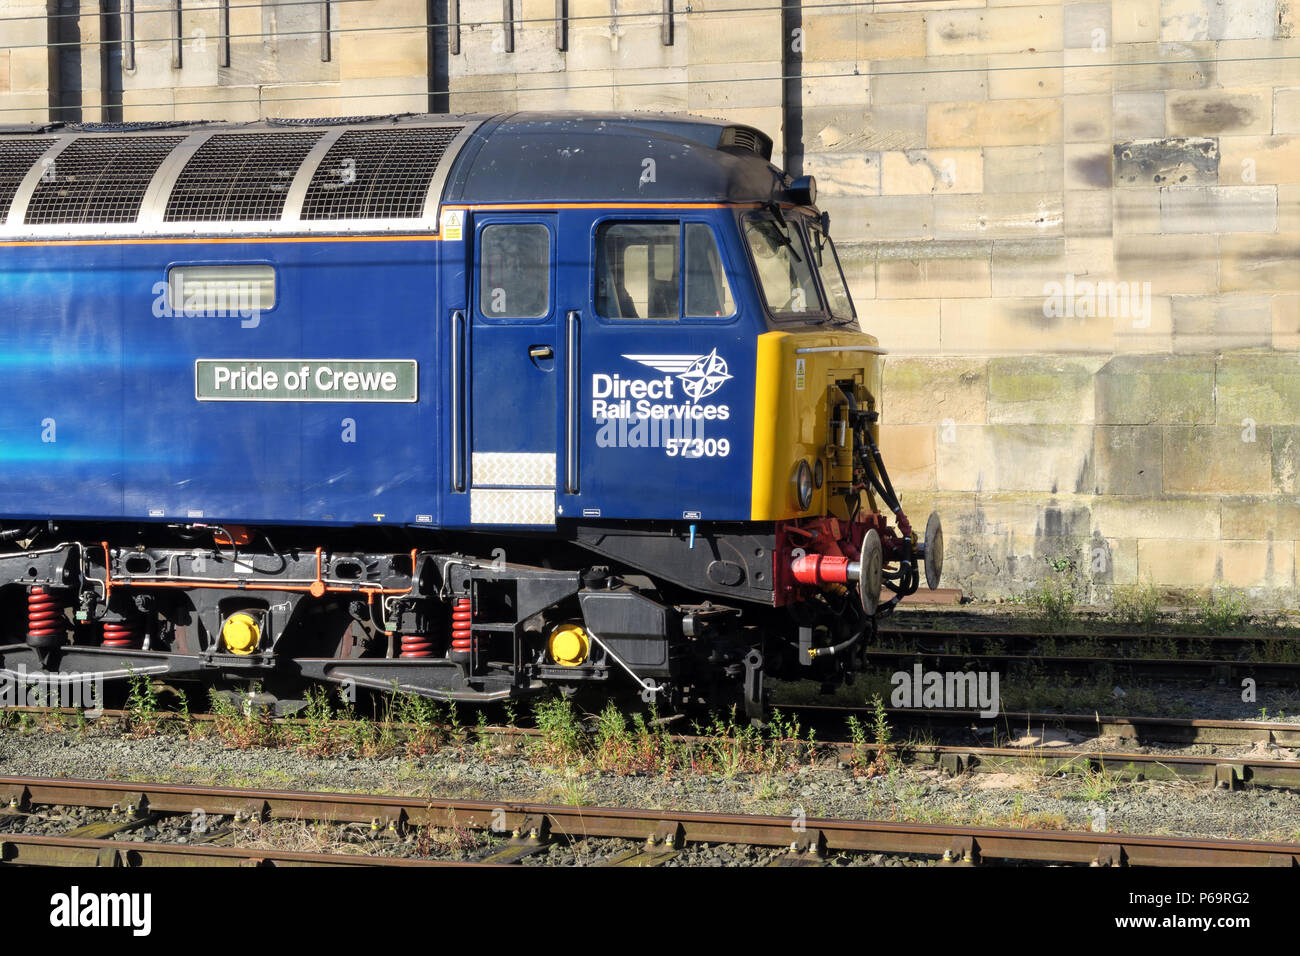 Direct Rail Services diesel engine 57309 Pride Of Crewe, at Carlisle Station,  Court Square, Cumbria, Carlisle, North West England, UK,  CA1 1QZ - Stock Image